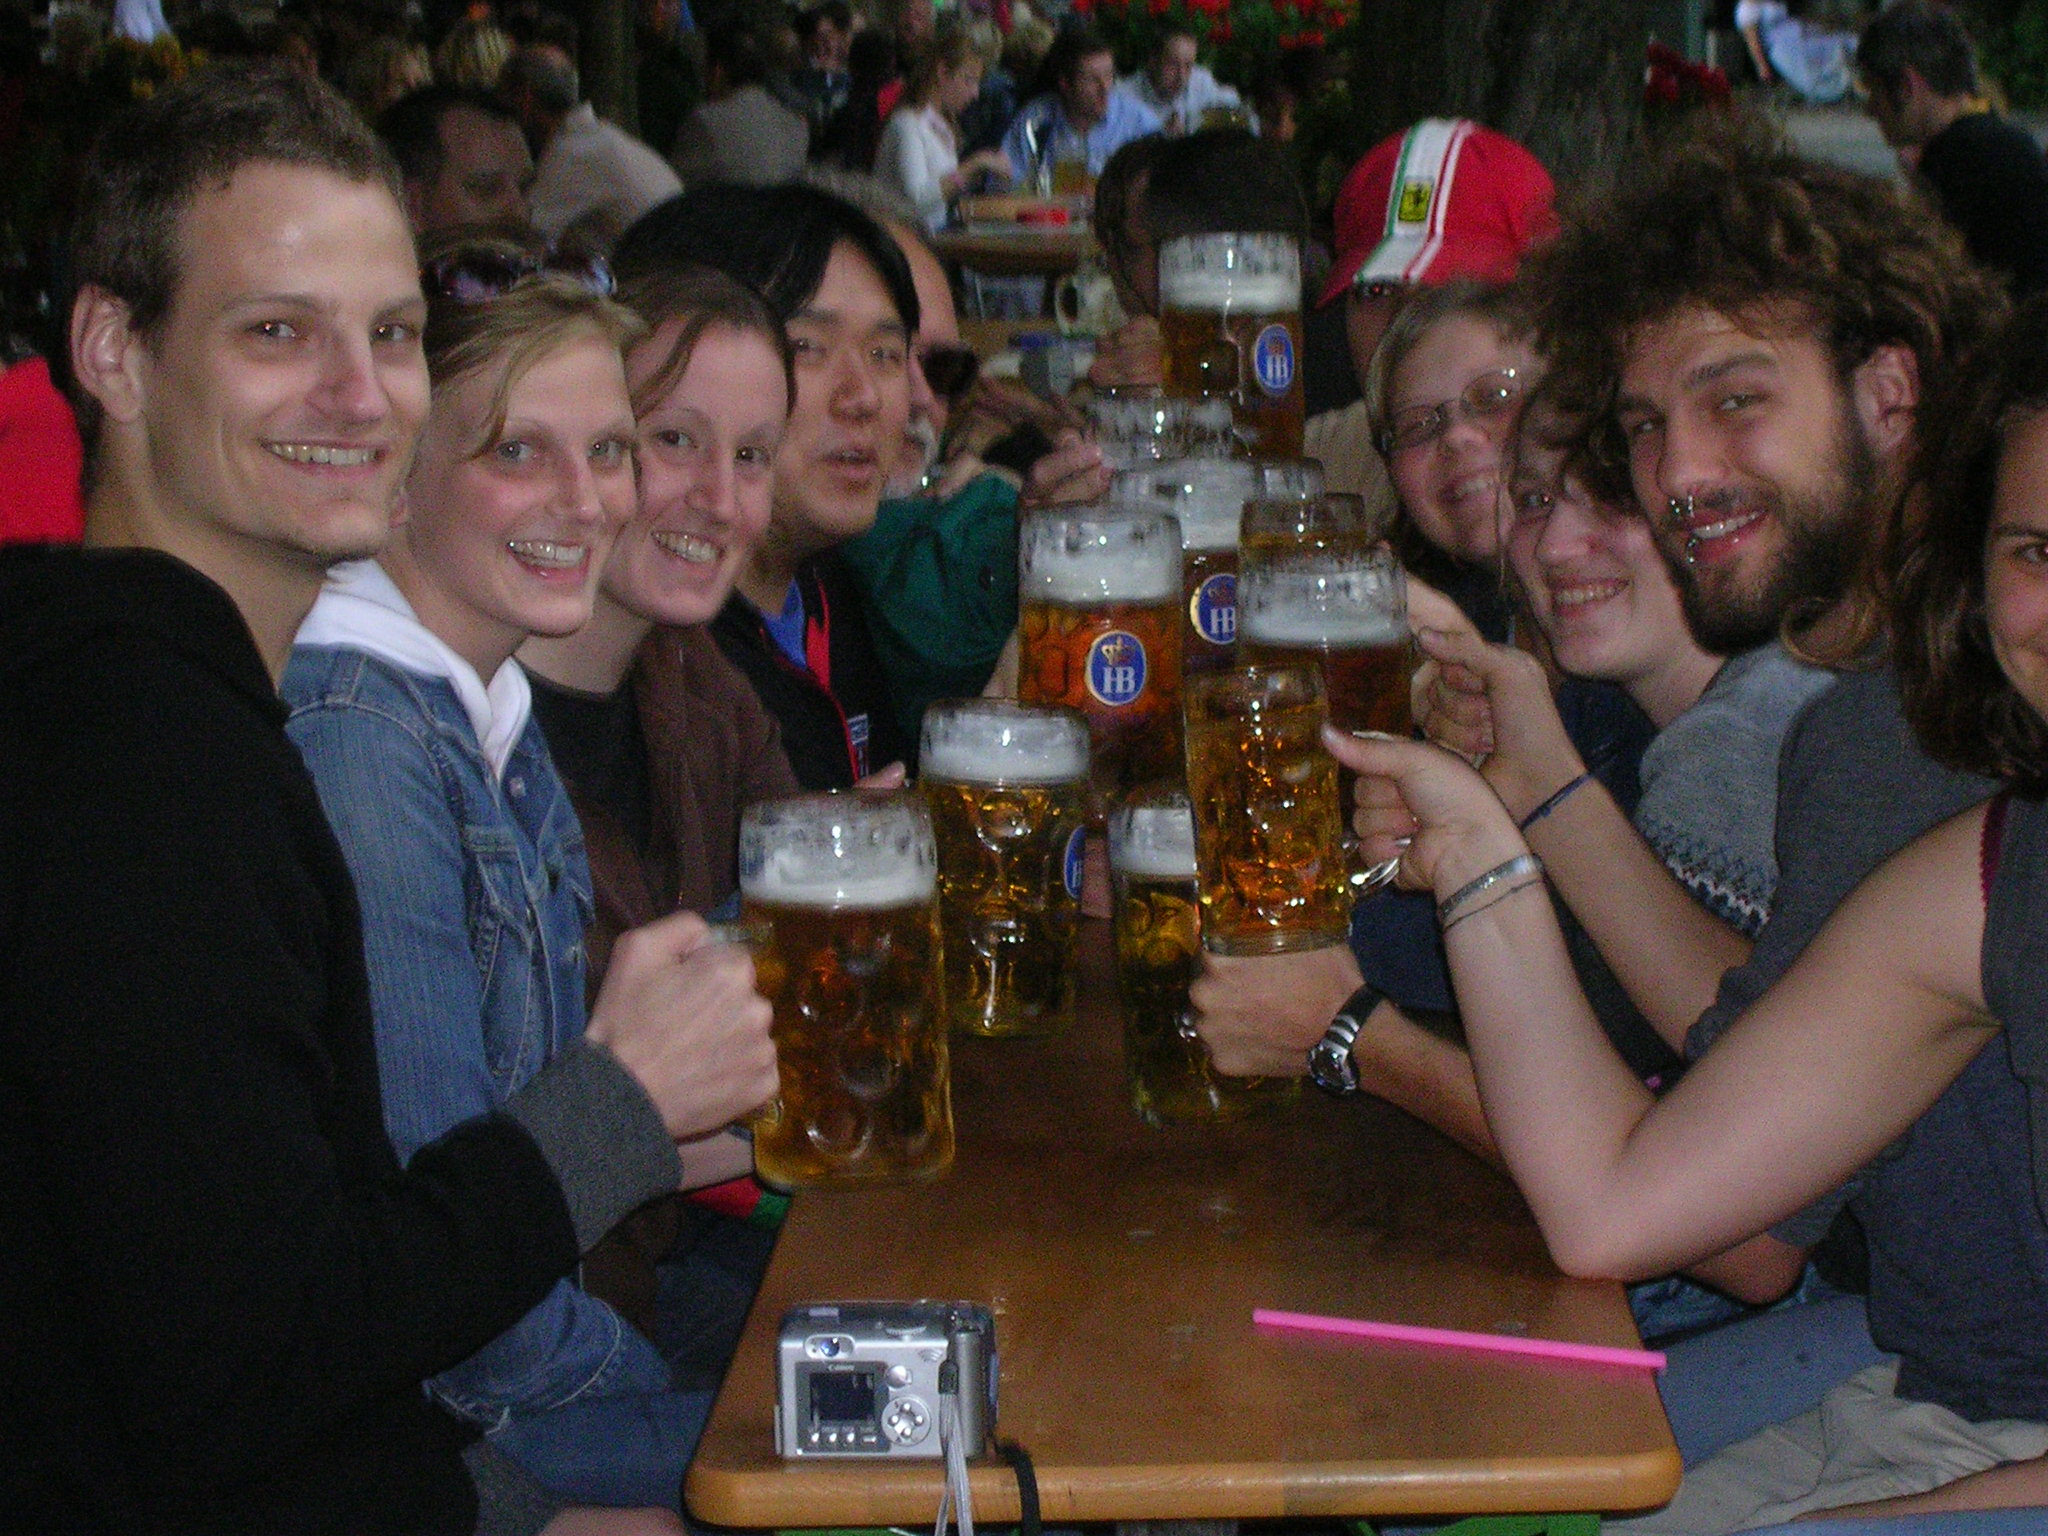 Dickinson Group in a Munich Beer Garden